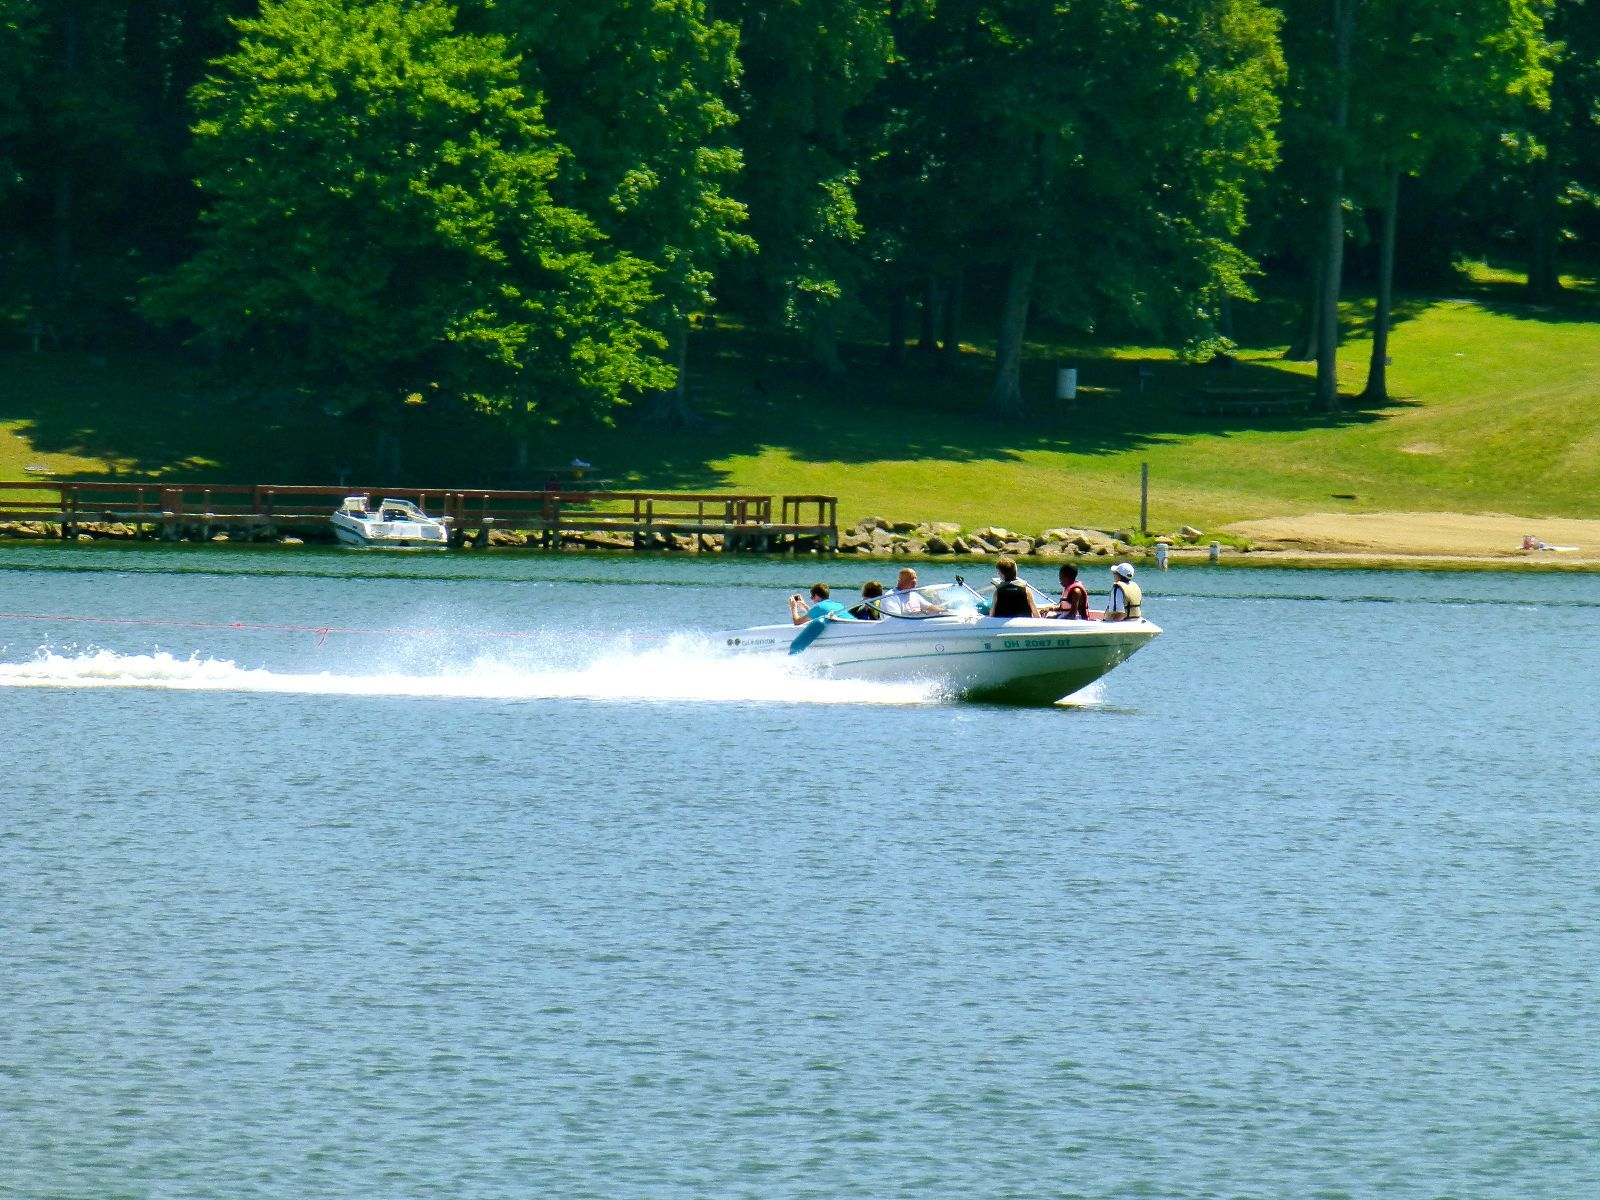 Boating at the apple valley lake is a popular pastime and